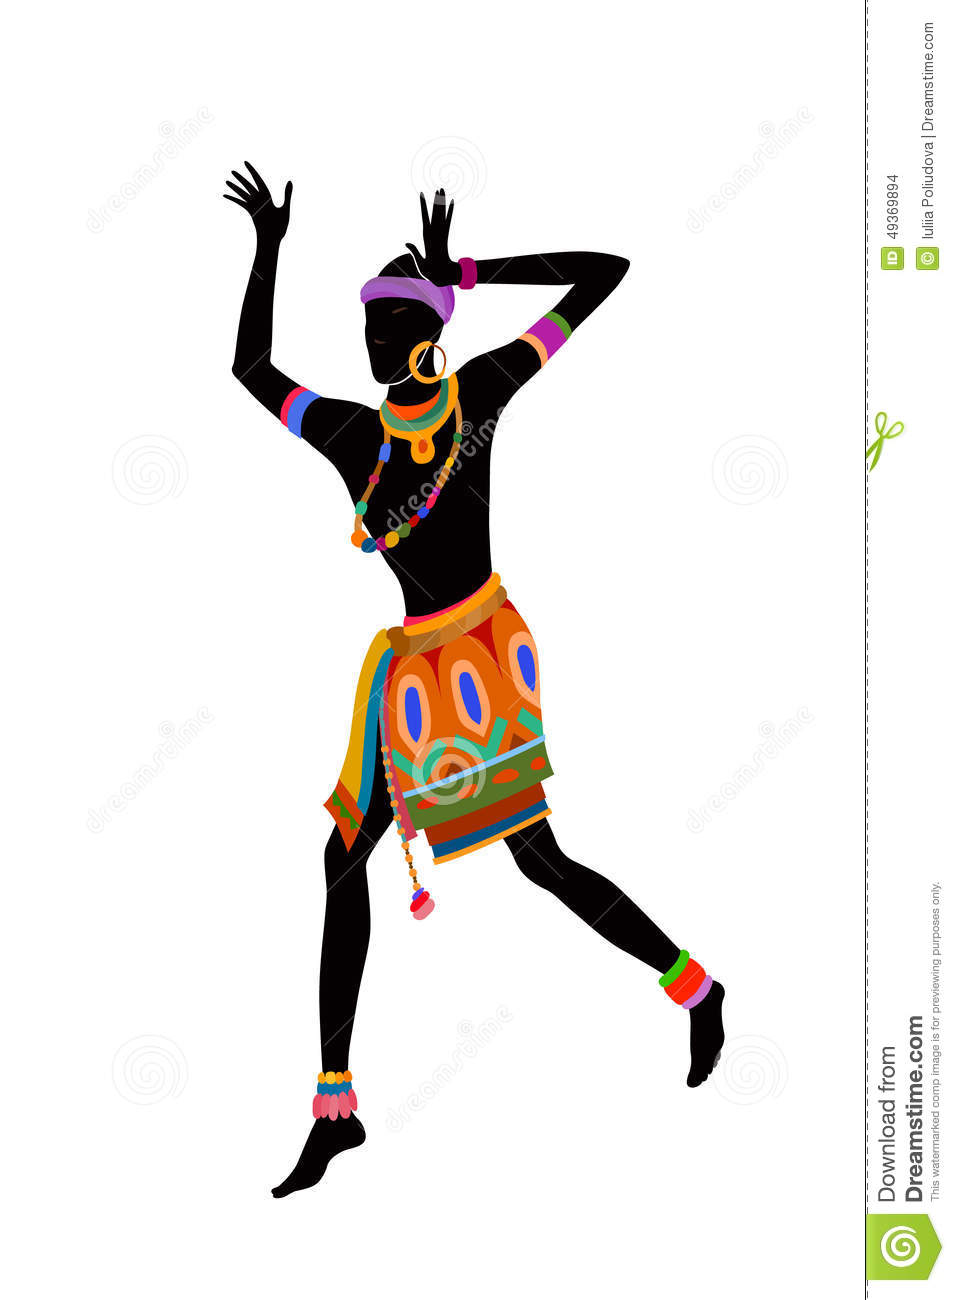 Ethnic dance african man stock illustration  Illustration of